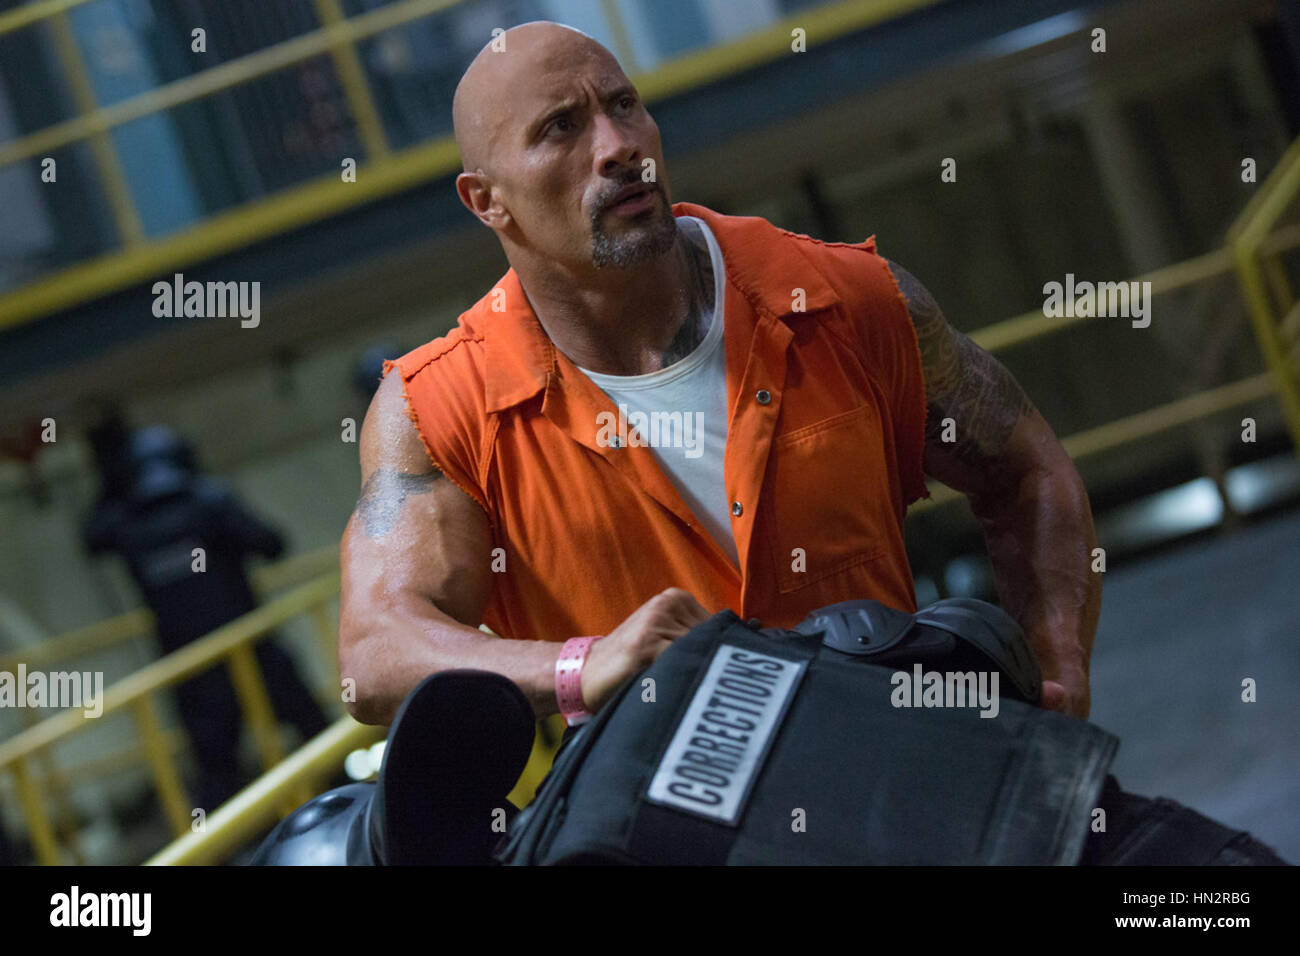 FAST & FURIOUS 8 (2017)  DWAYNE JOHNSON  F. GARY GRAY (DIR)  UNIVERSAL PICTURES/MOVIESTORE COLLECTION LTD - Stock Image